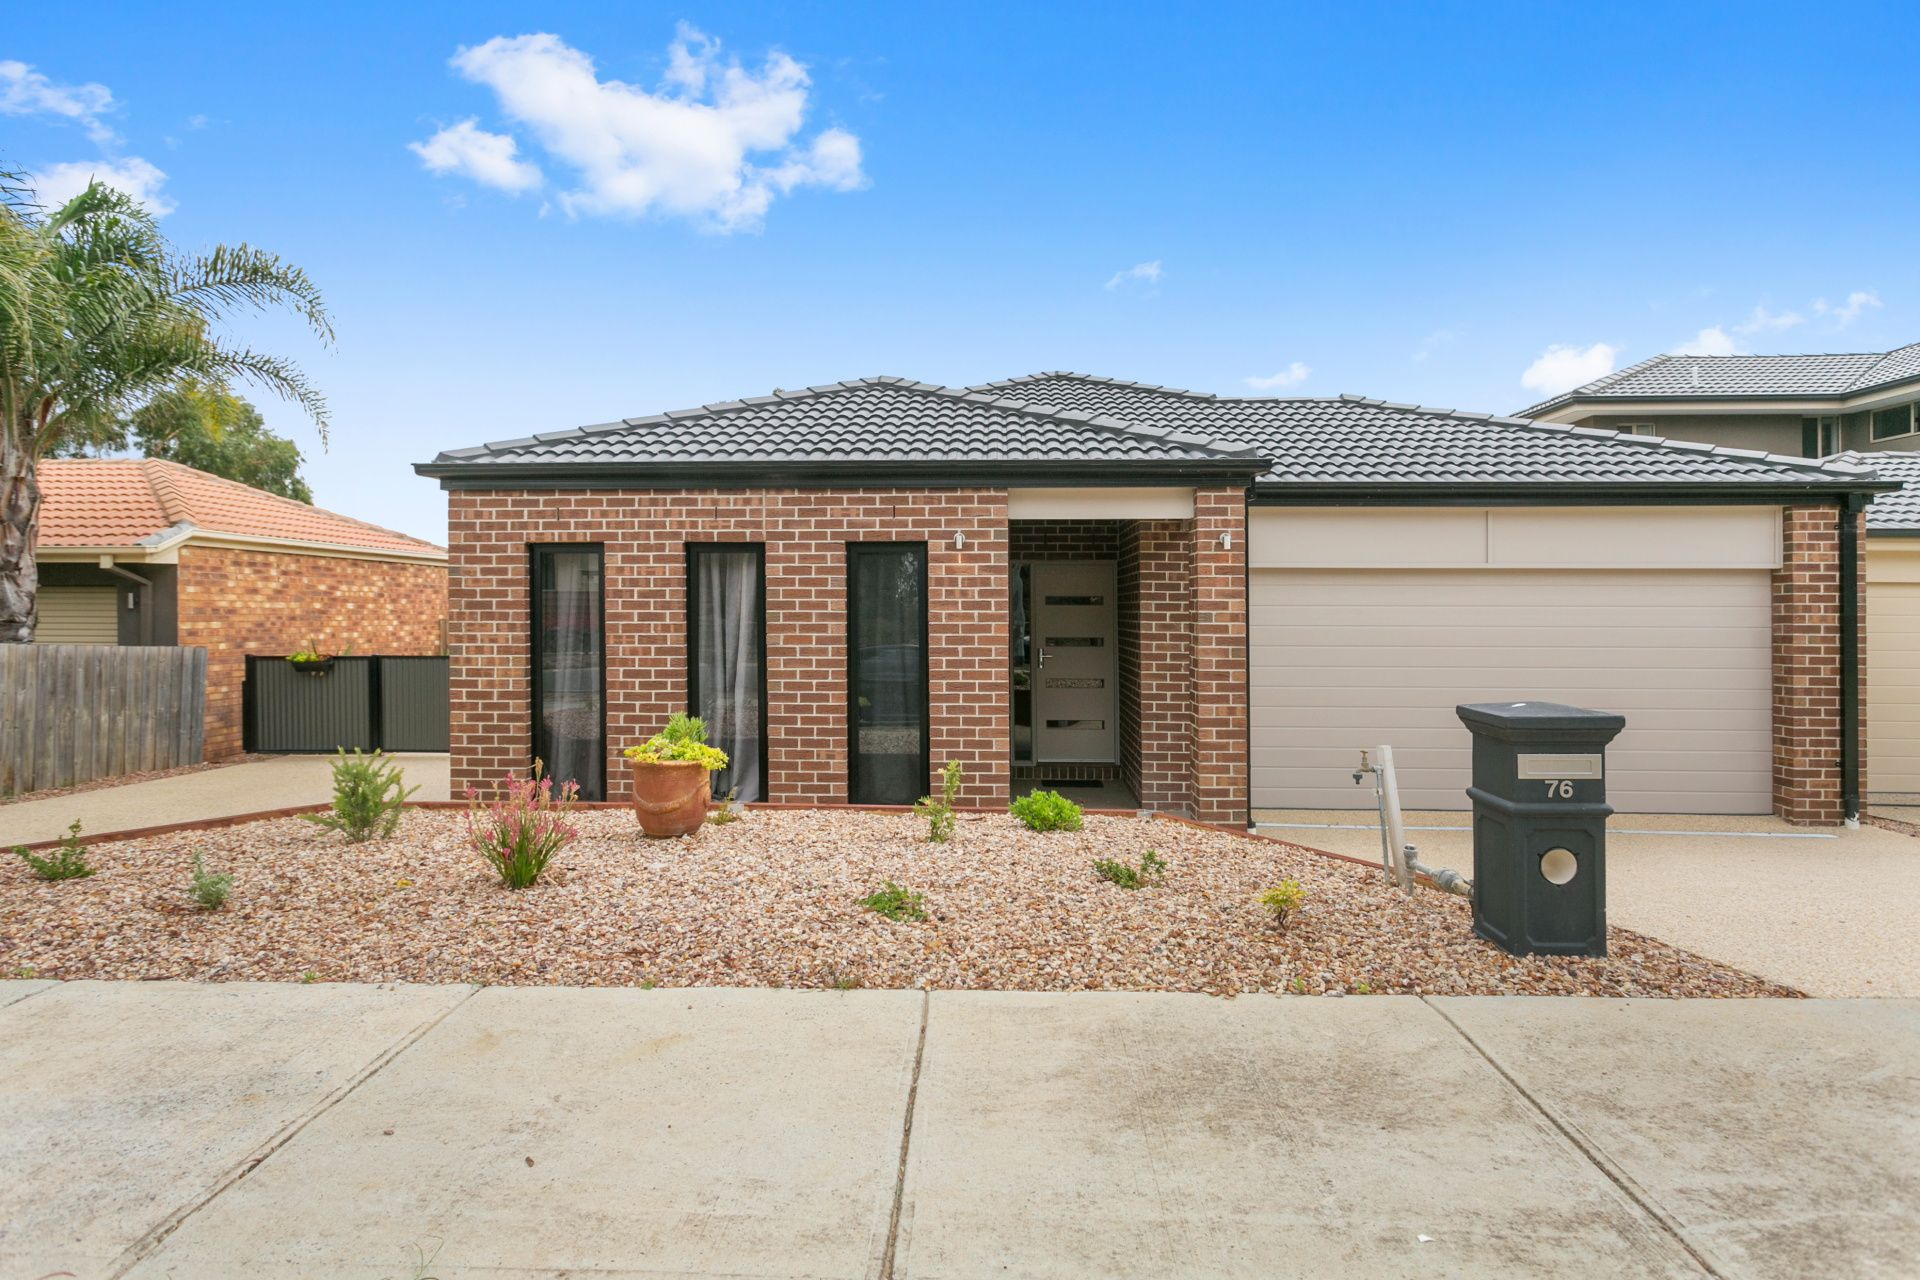 76 Orama Avenue, CARRUM DOWNS, VIC, 3201 - Image